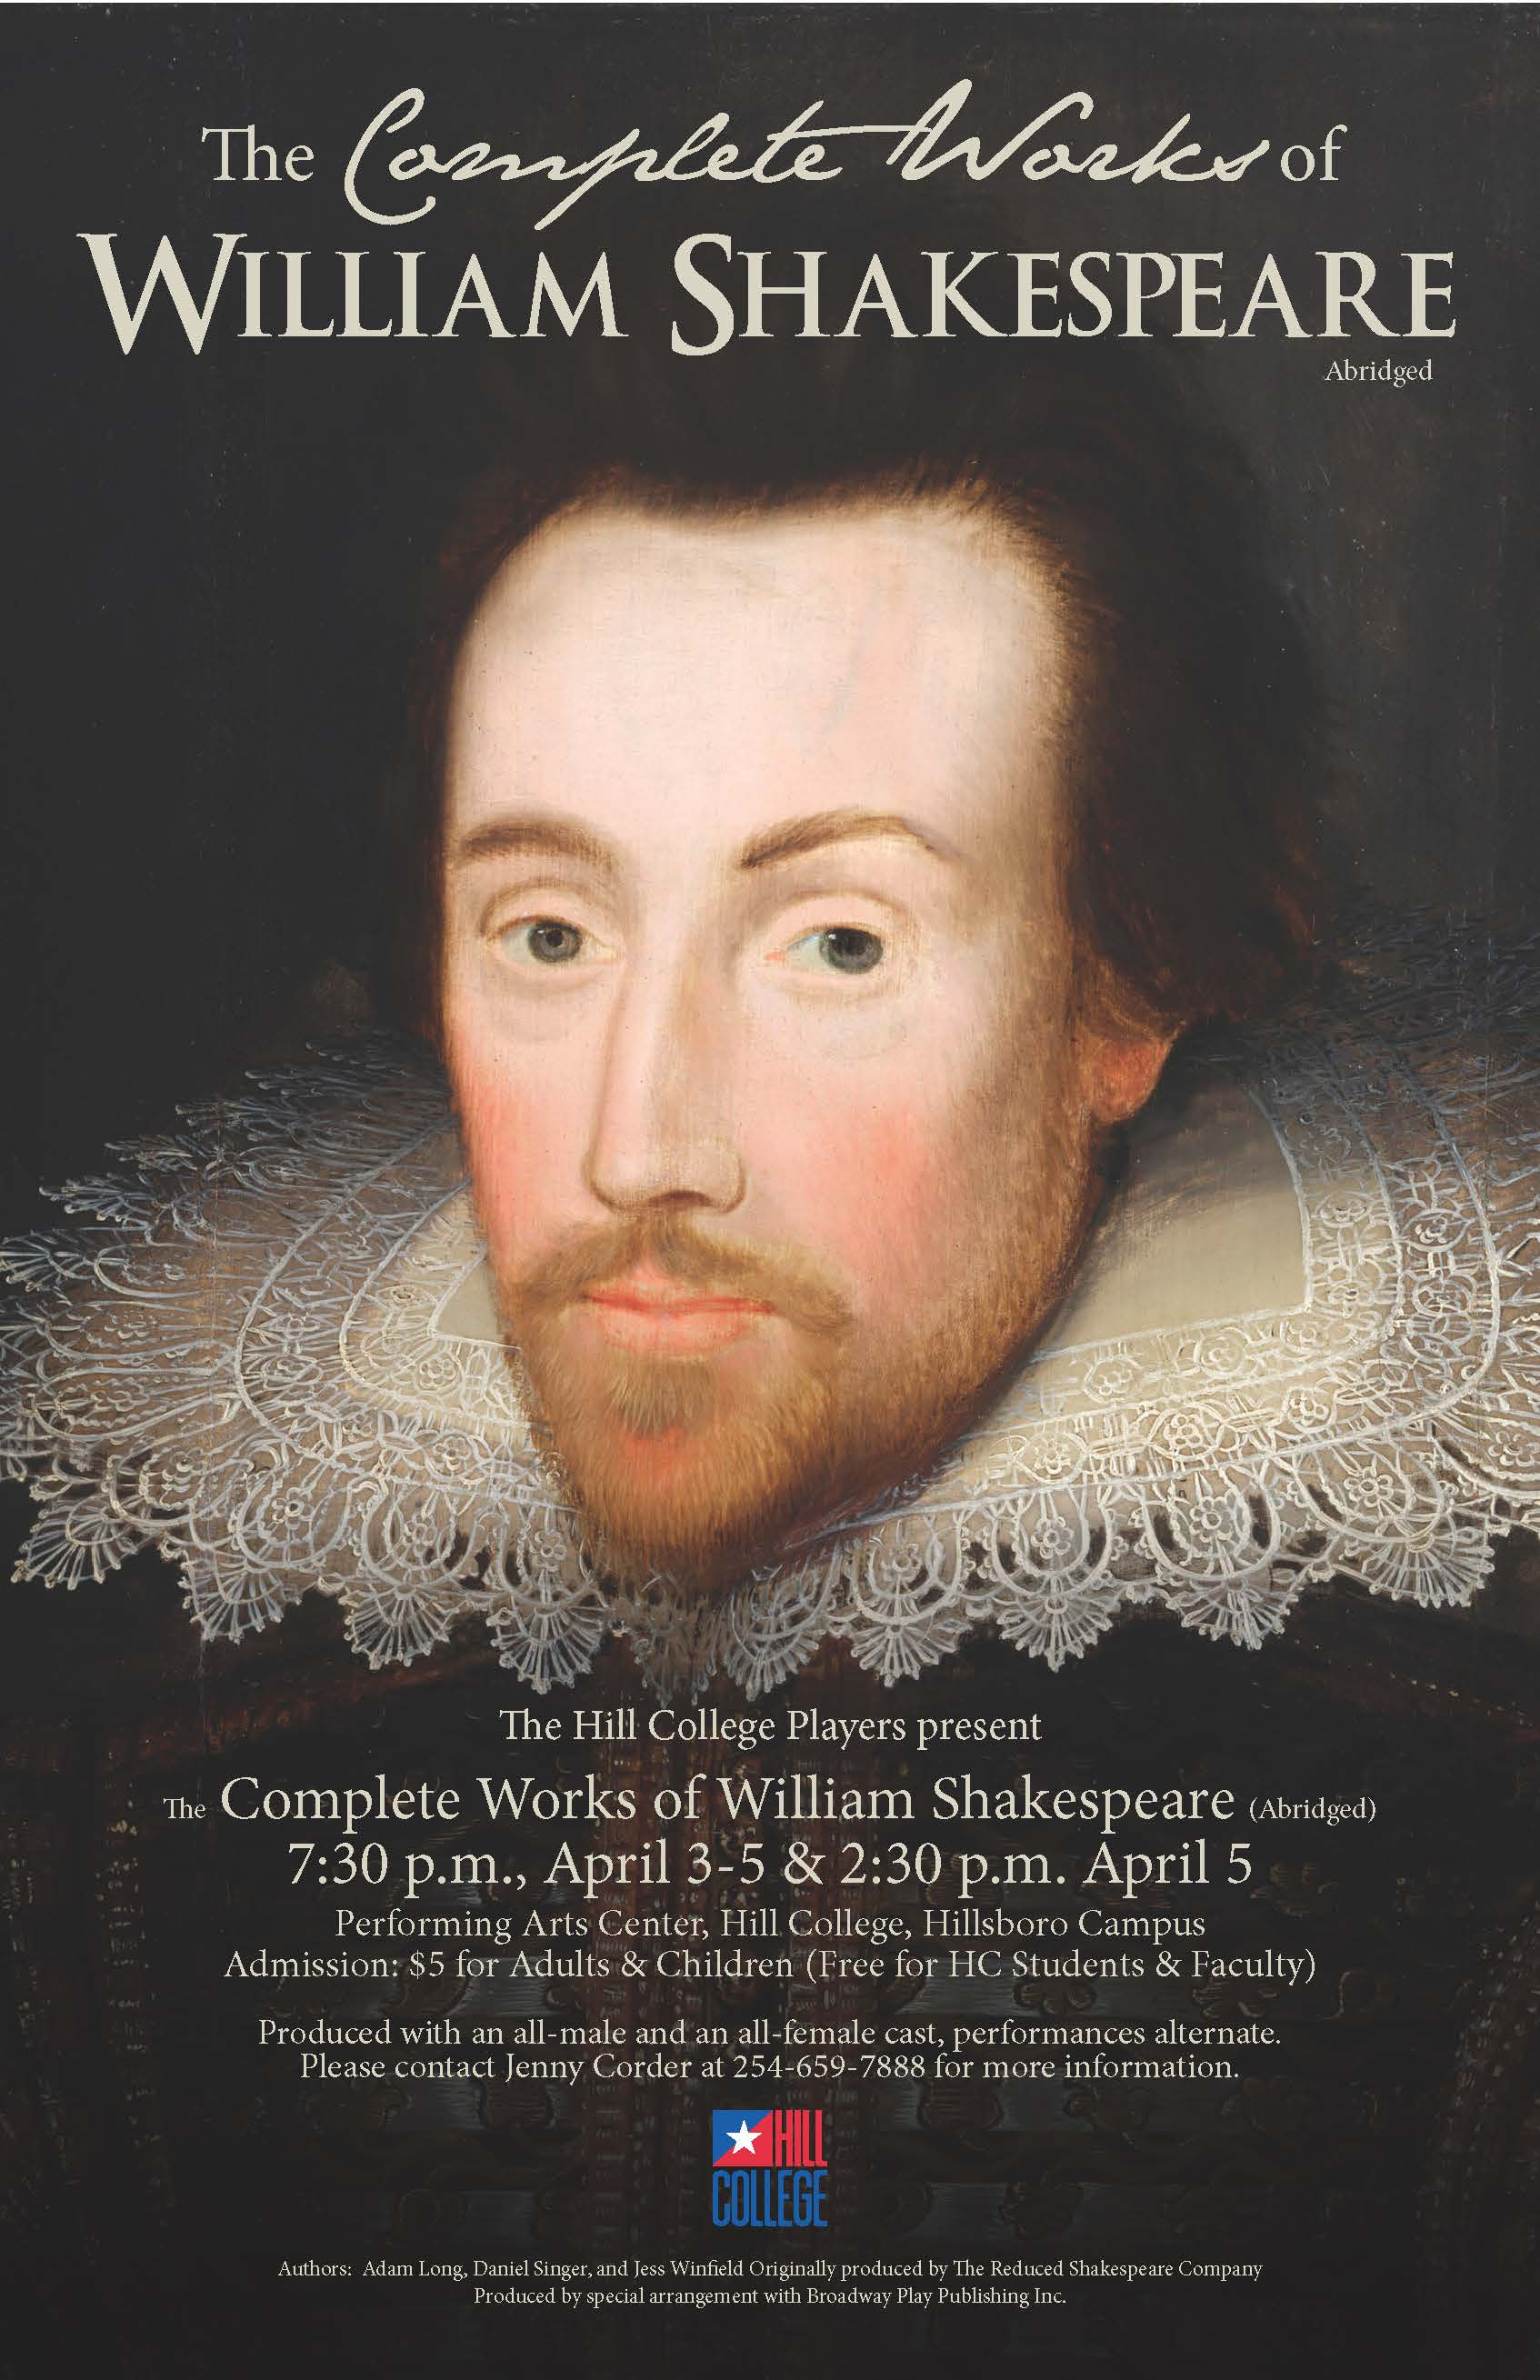 the work of shakespeare Shakespeare's work has made a lasting impression on later theatre and literature in particular, he expanded the dramatic potential of characterisation.